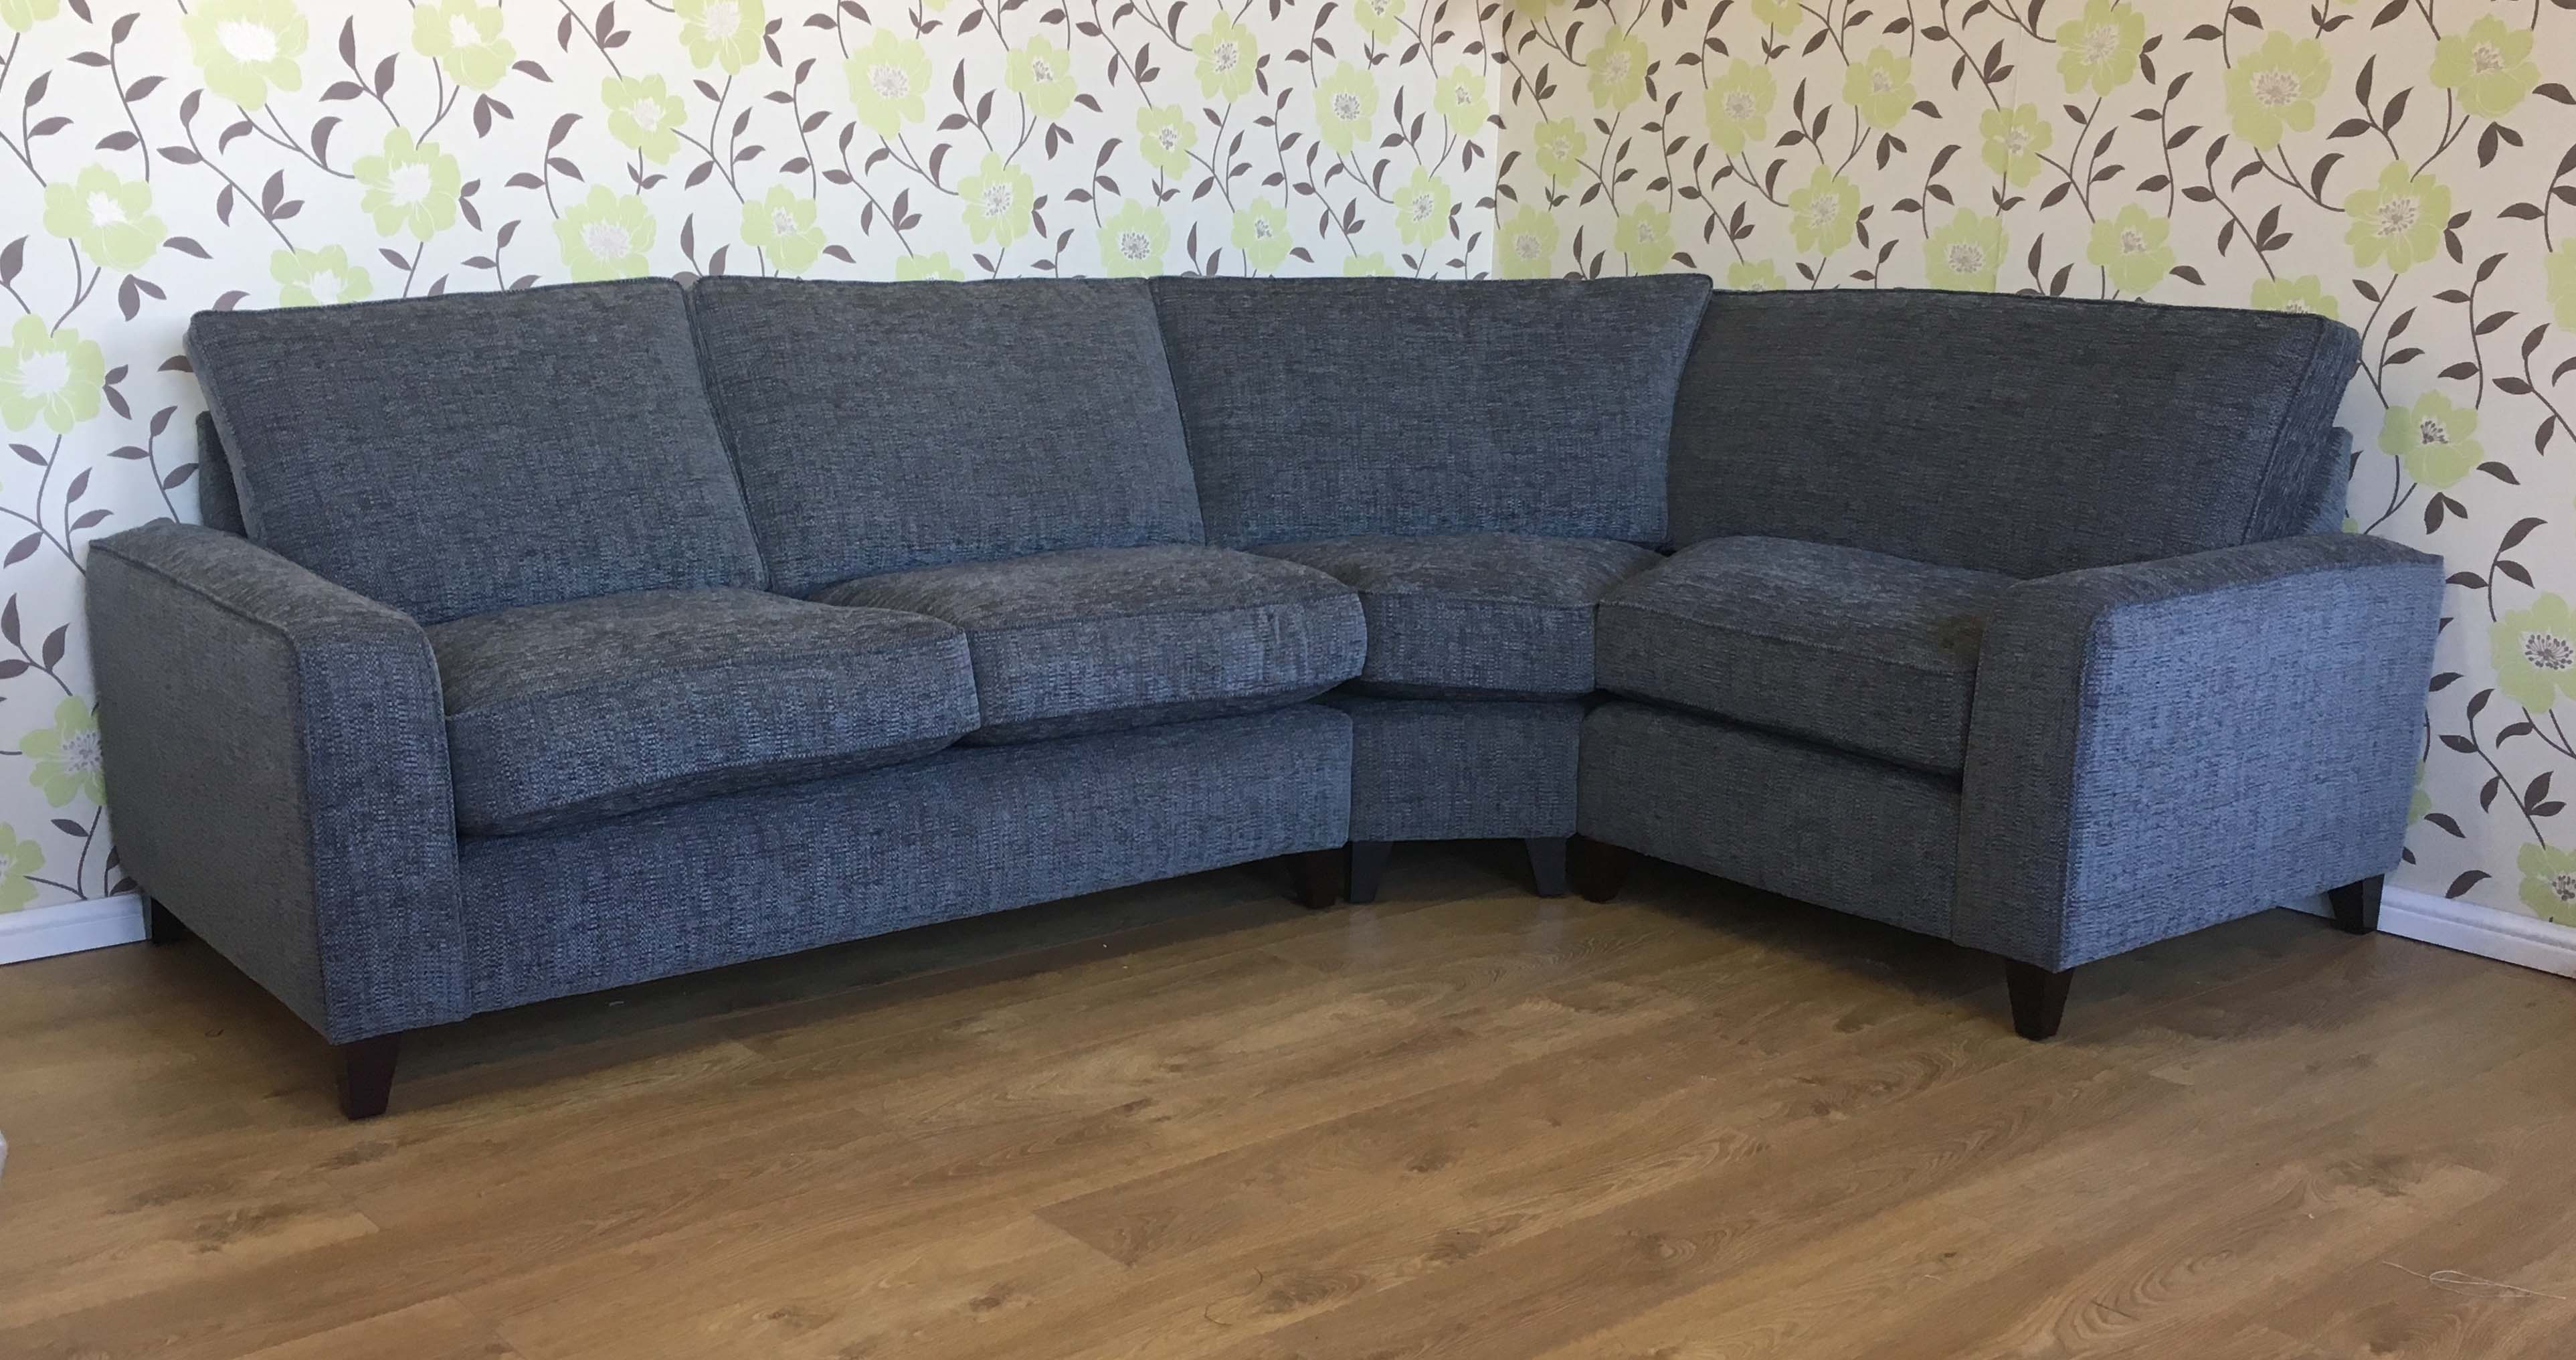 angled sectional sofa cheap upholstery singapore cambridge corner tailor made sofas